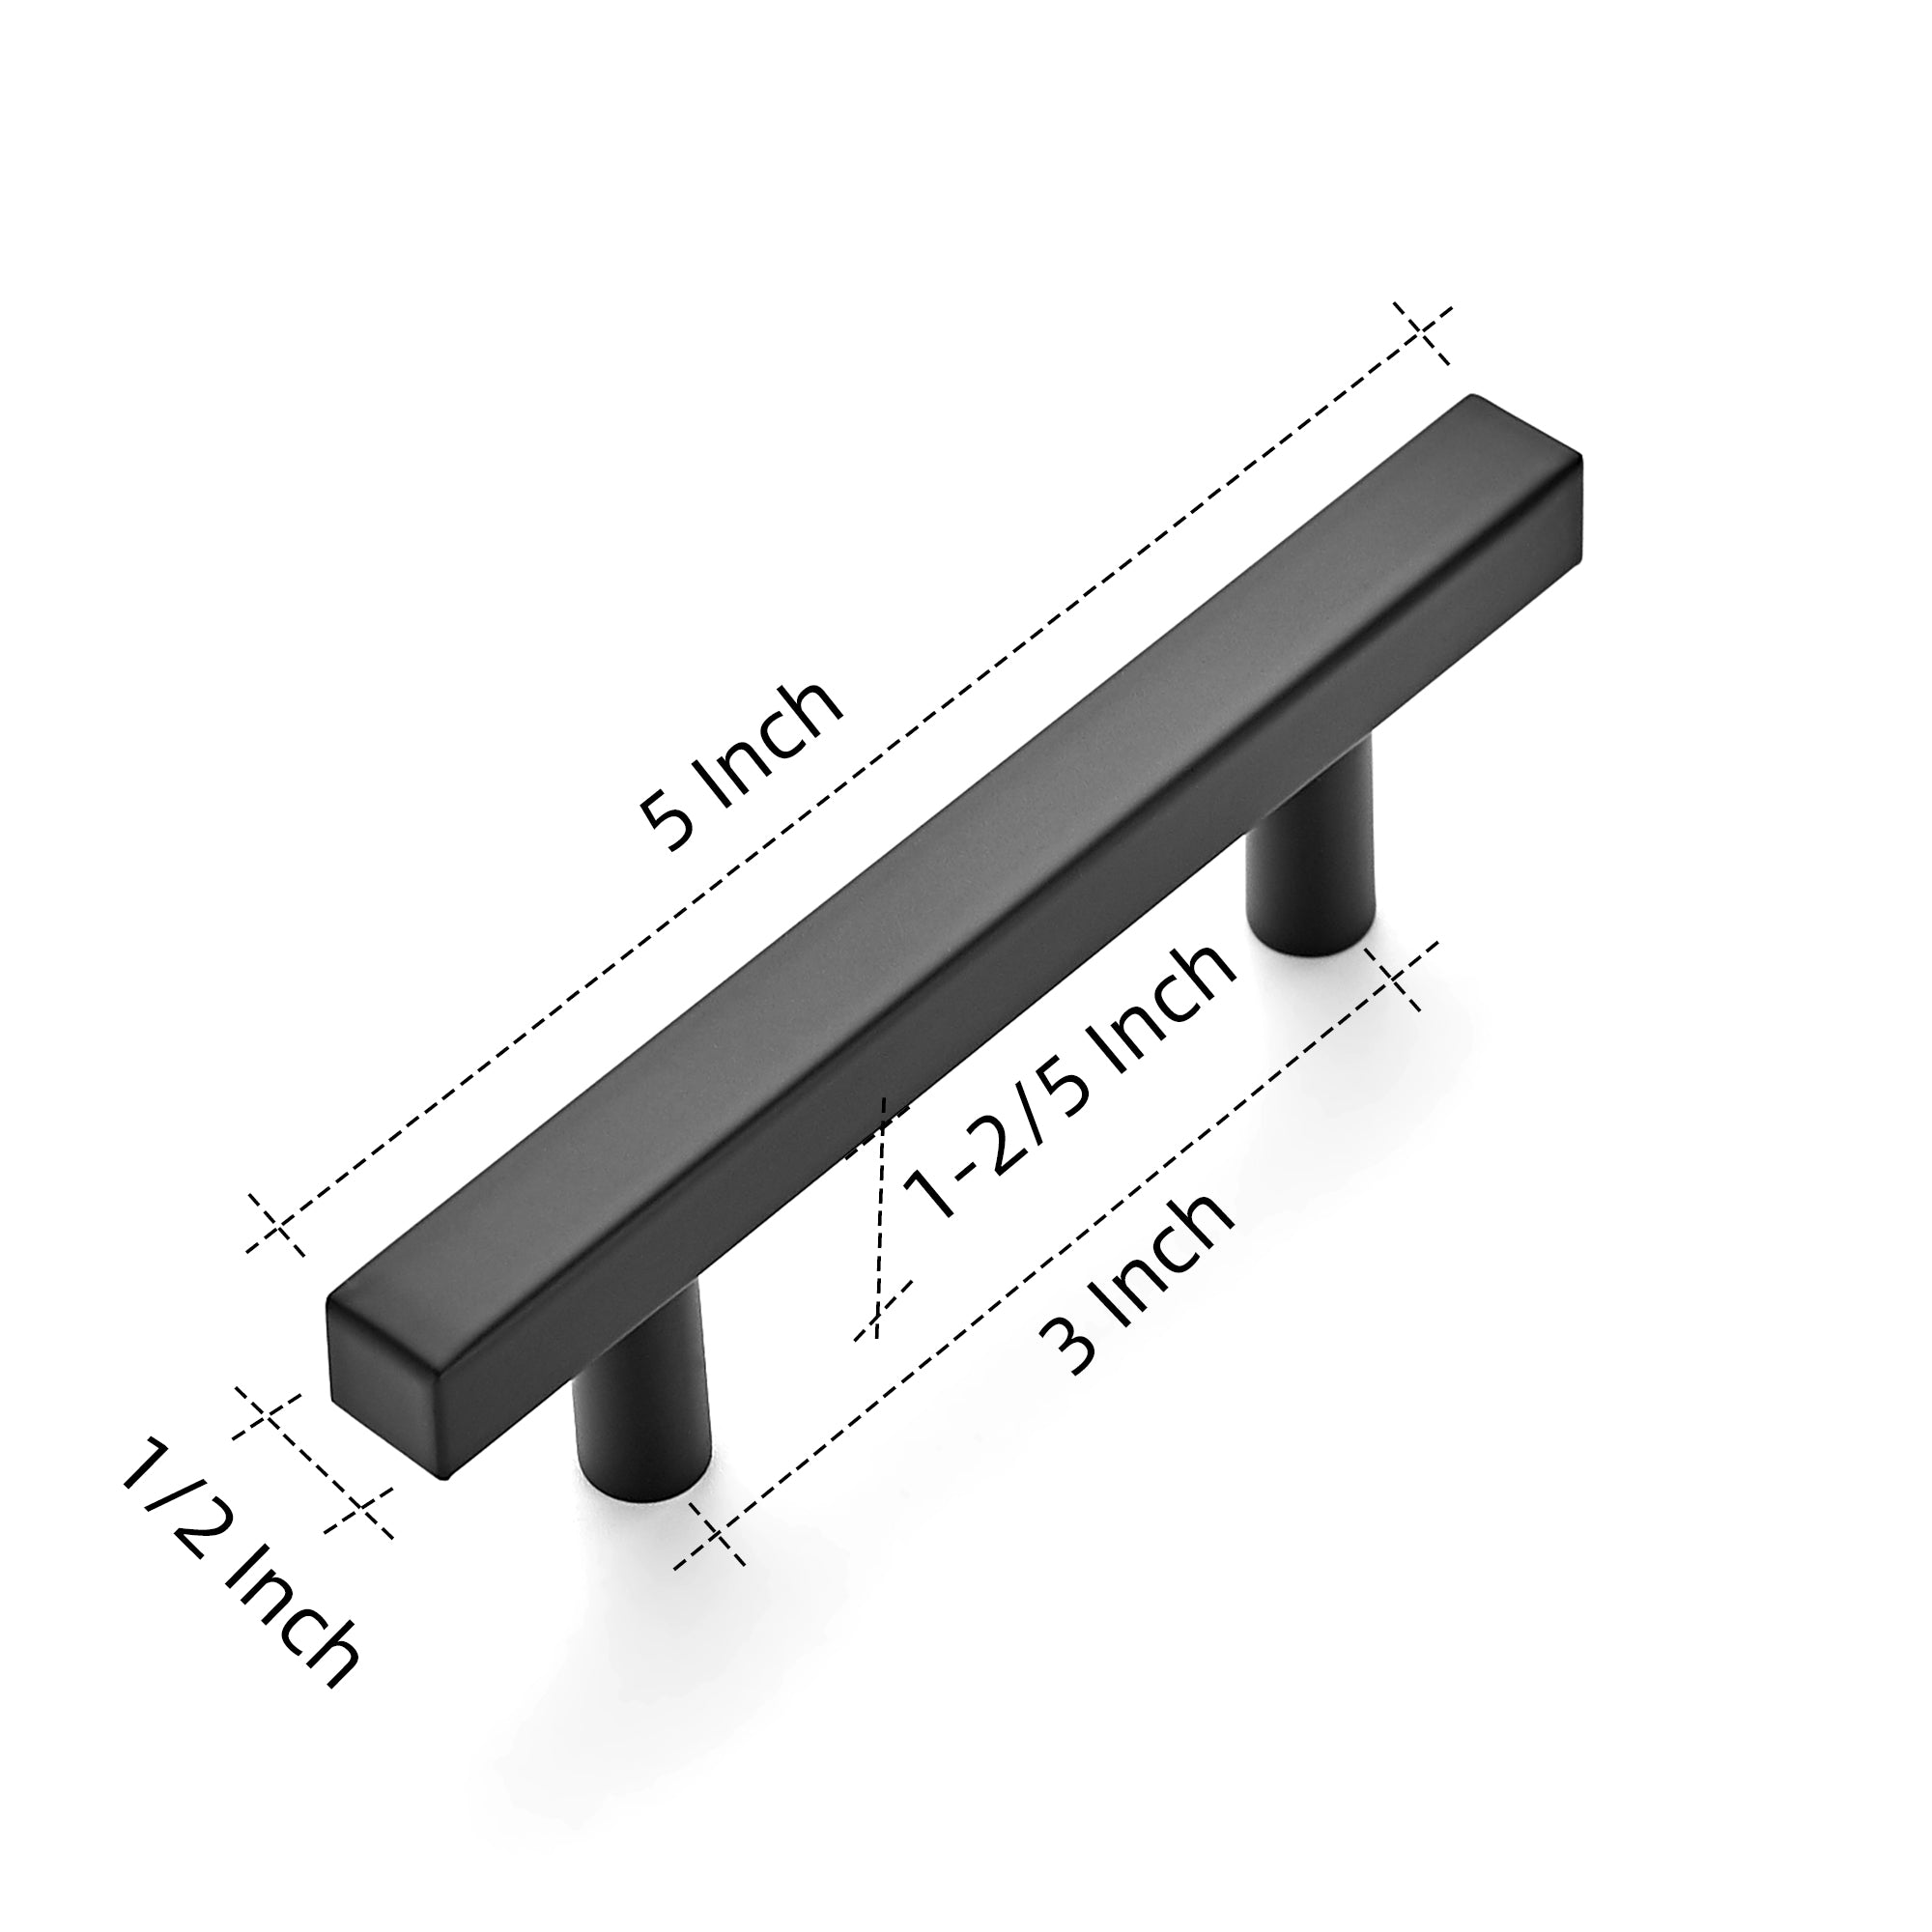 "Ravinte 5 inch Square Cabinet Pulls Matte Black Stainless Steel Kitchen Drawer Pulls Cabinet Handles 5""Length, 3"" Hole Center"